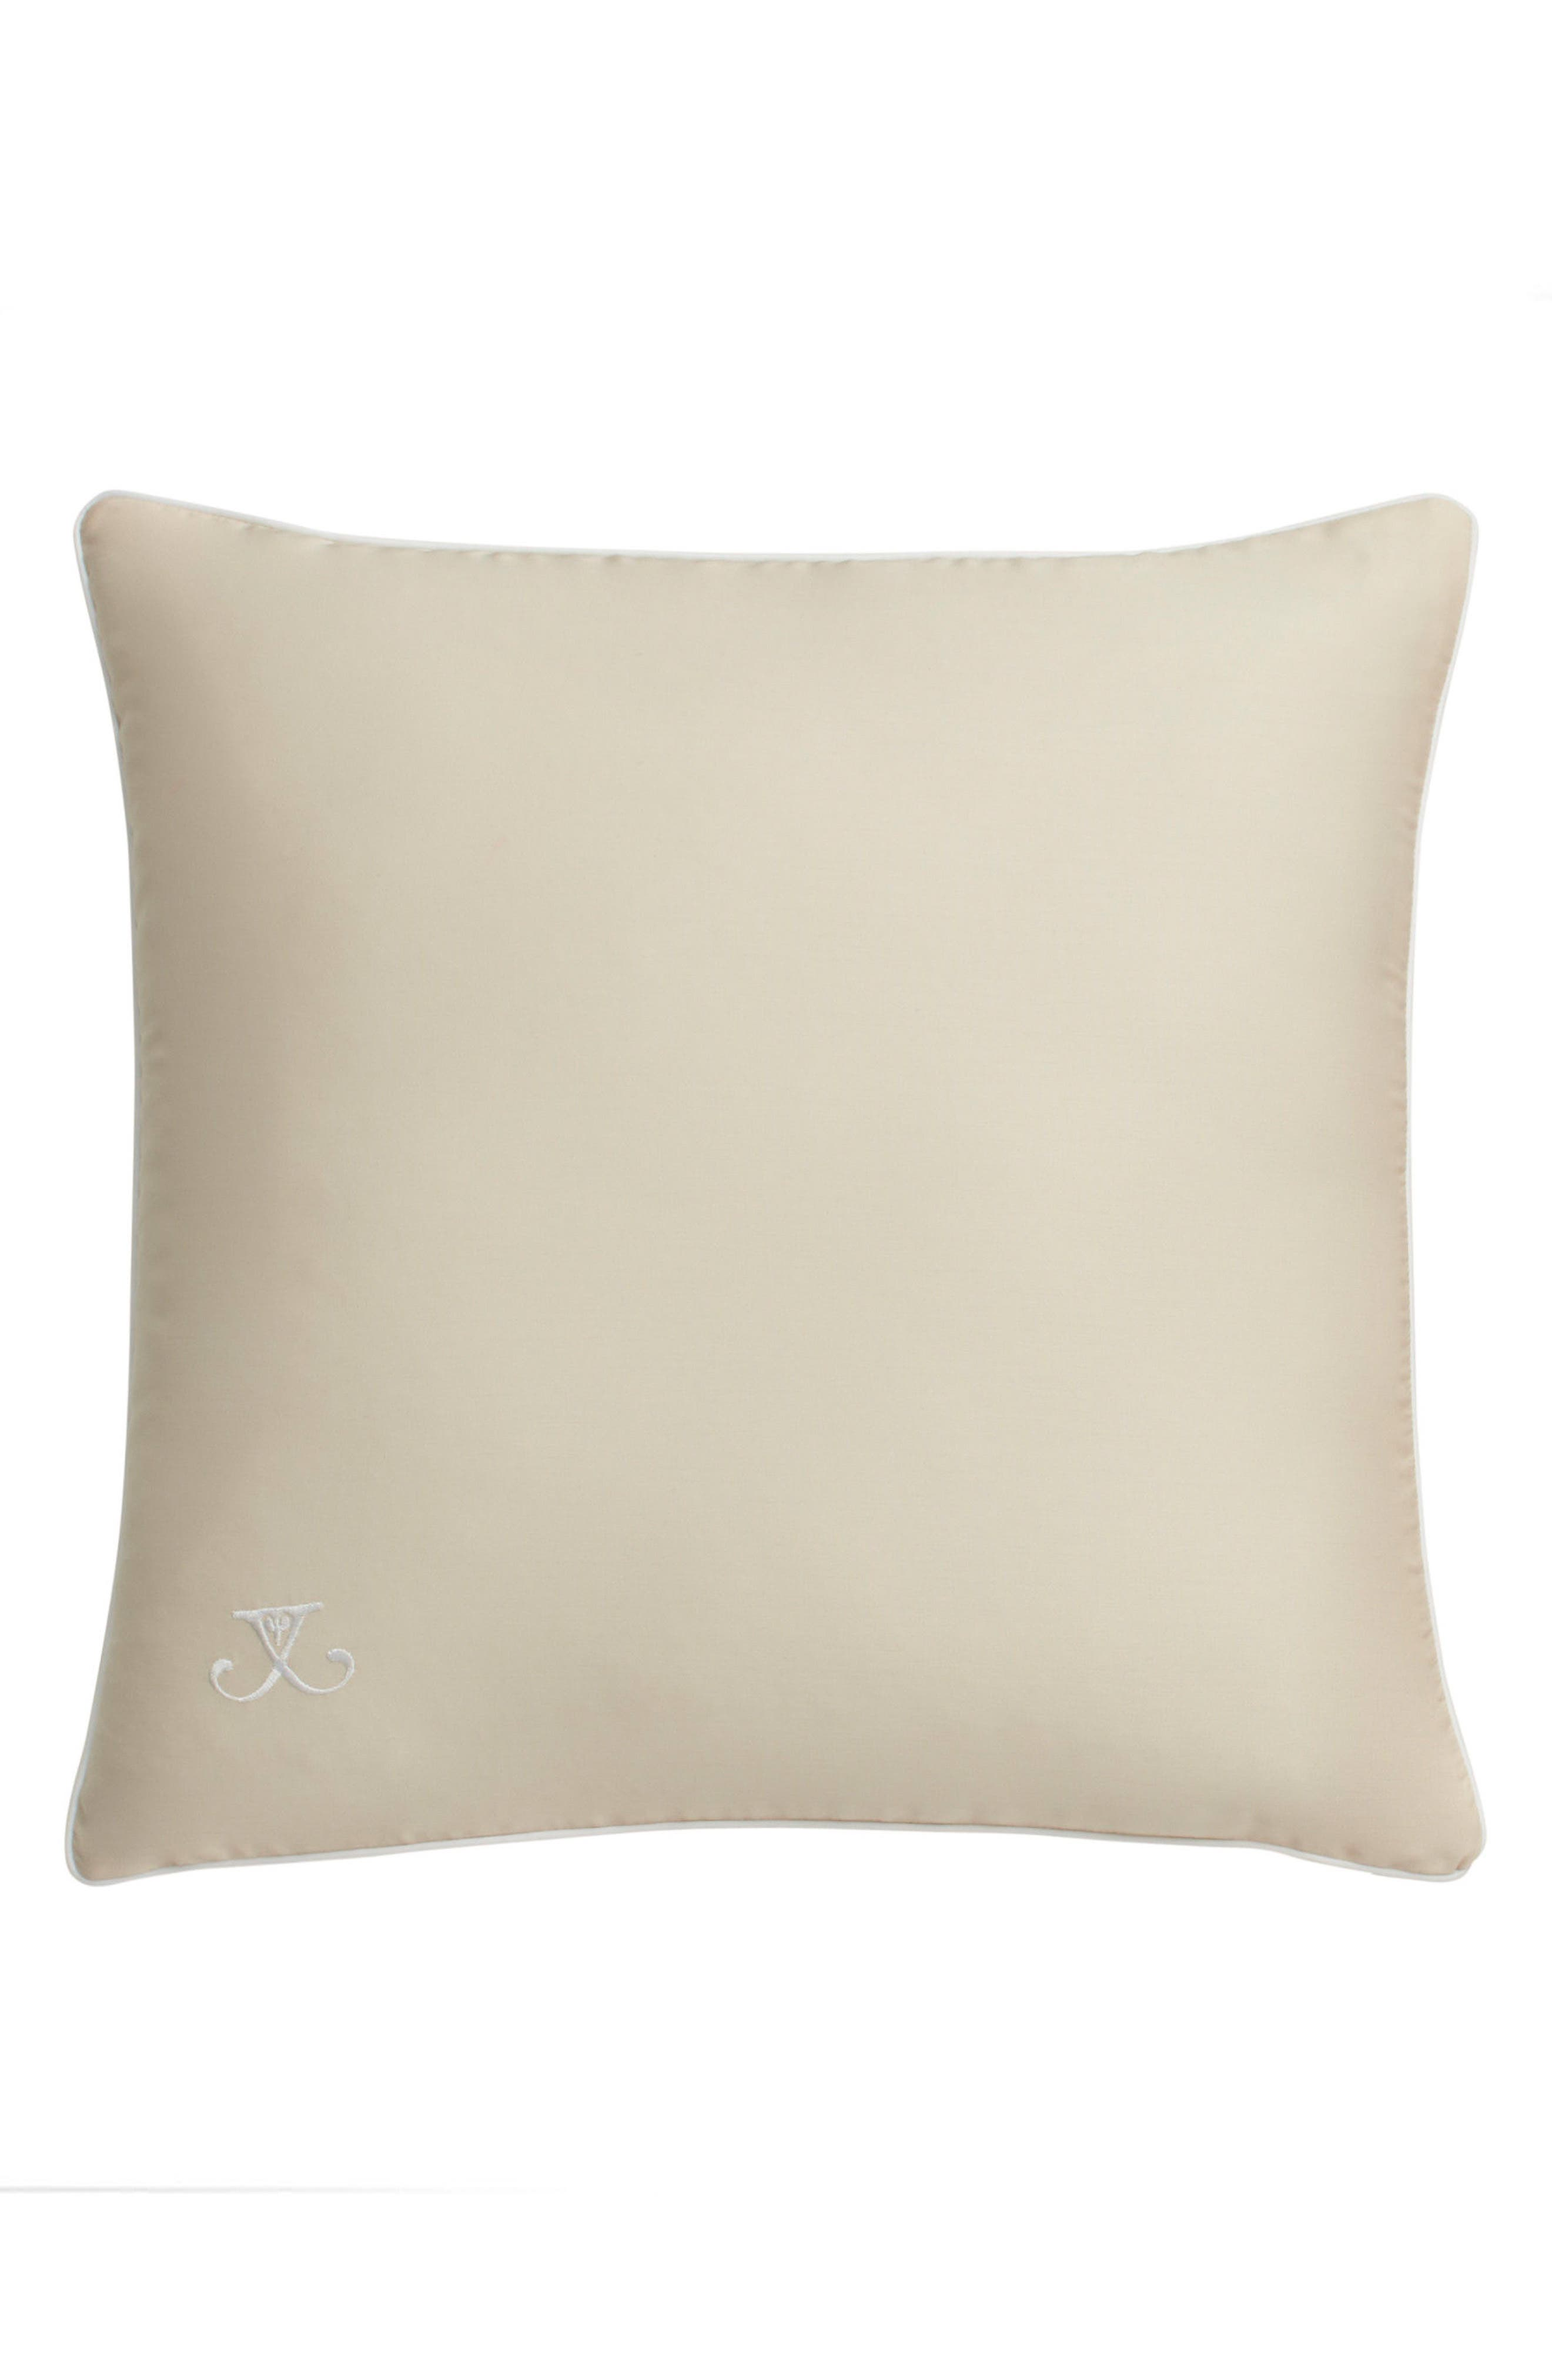 Blackpoint Hex Accent Pillow,                         Main,                         color, 250